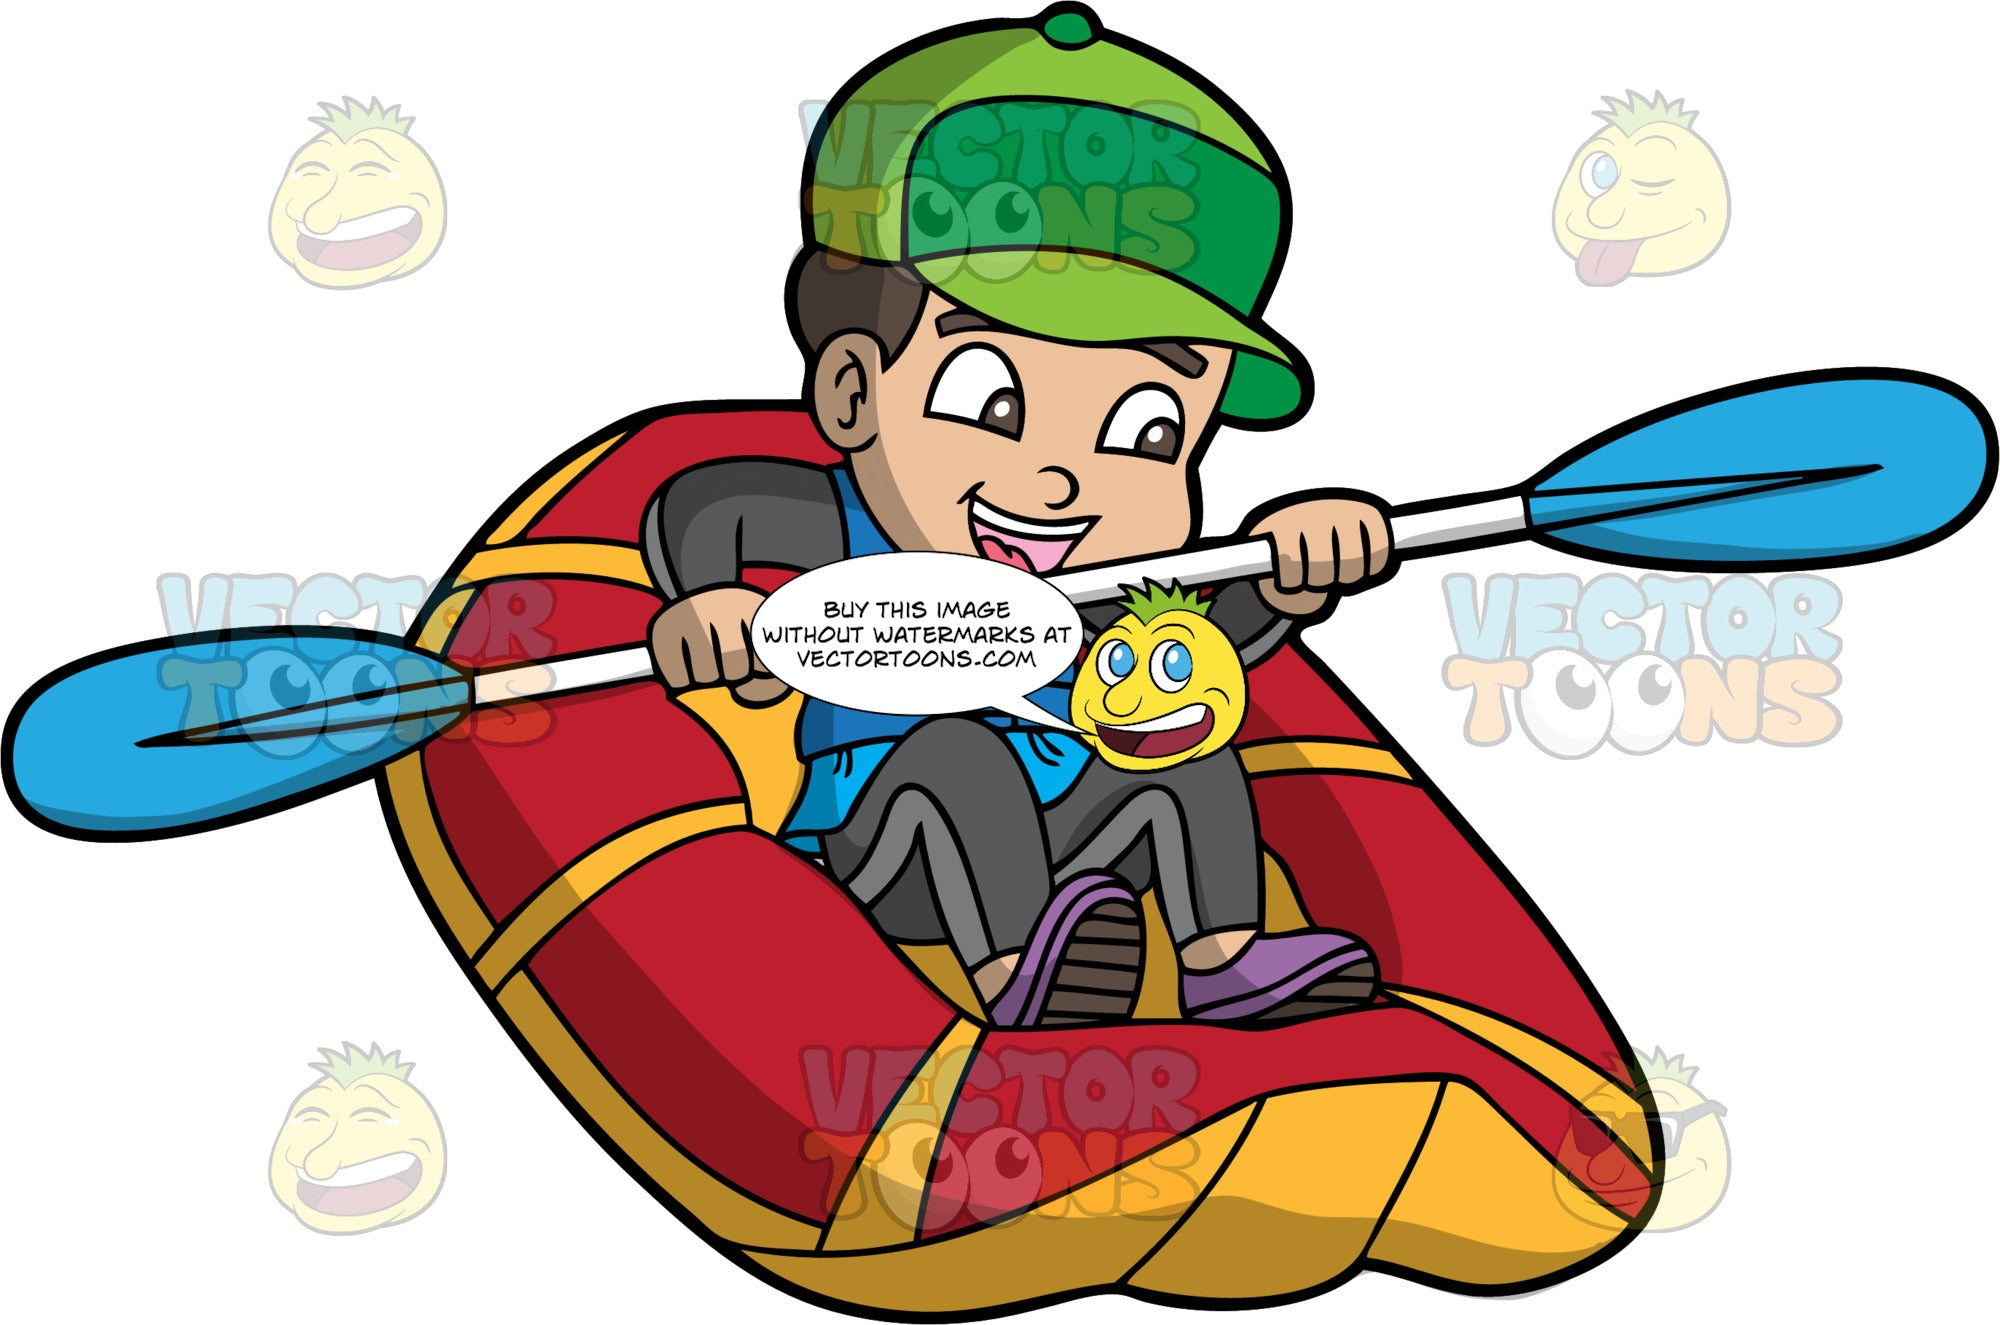 A Happy Boy Rafting Along A River. A boy wearing a grey wet suit, purple water shoes, blue life jacket, and green baseball cap, steers his red and yellow raft through some rough water with the double bladed paddle he is holding in his hands